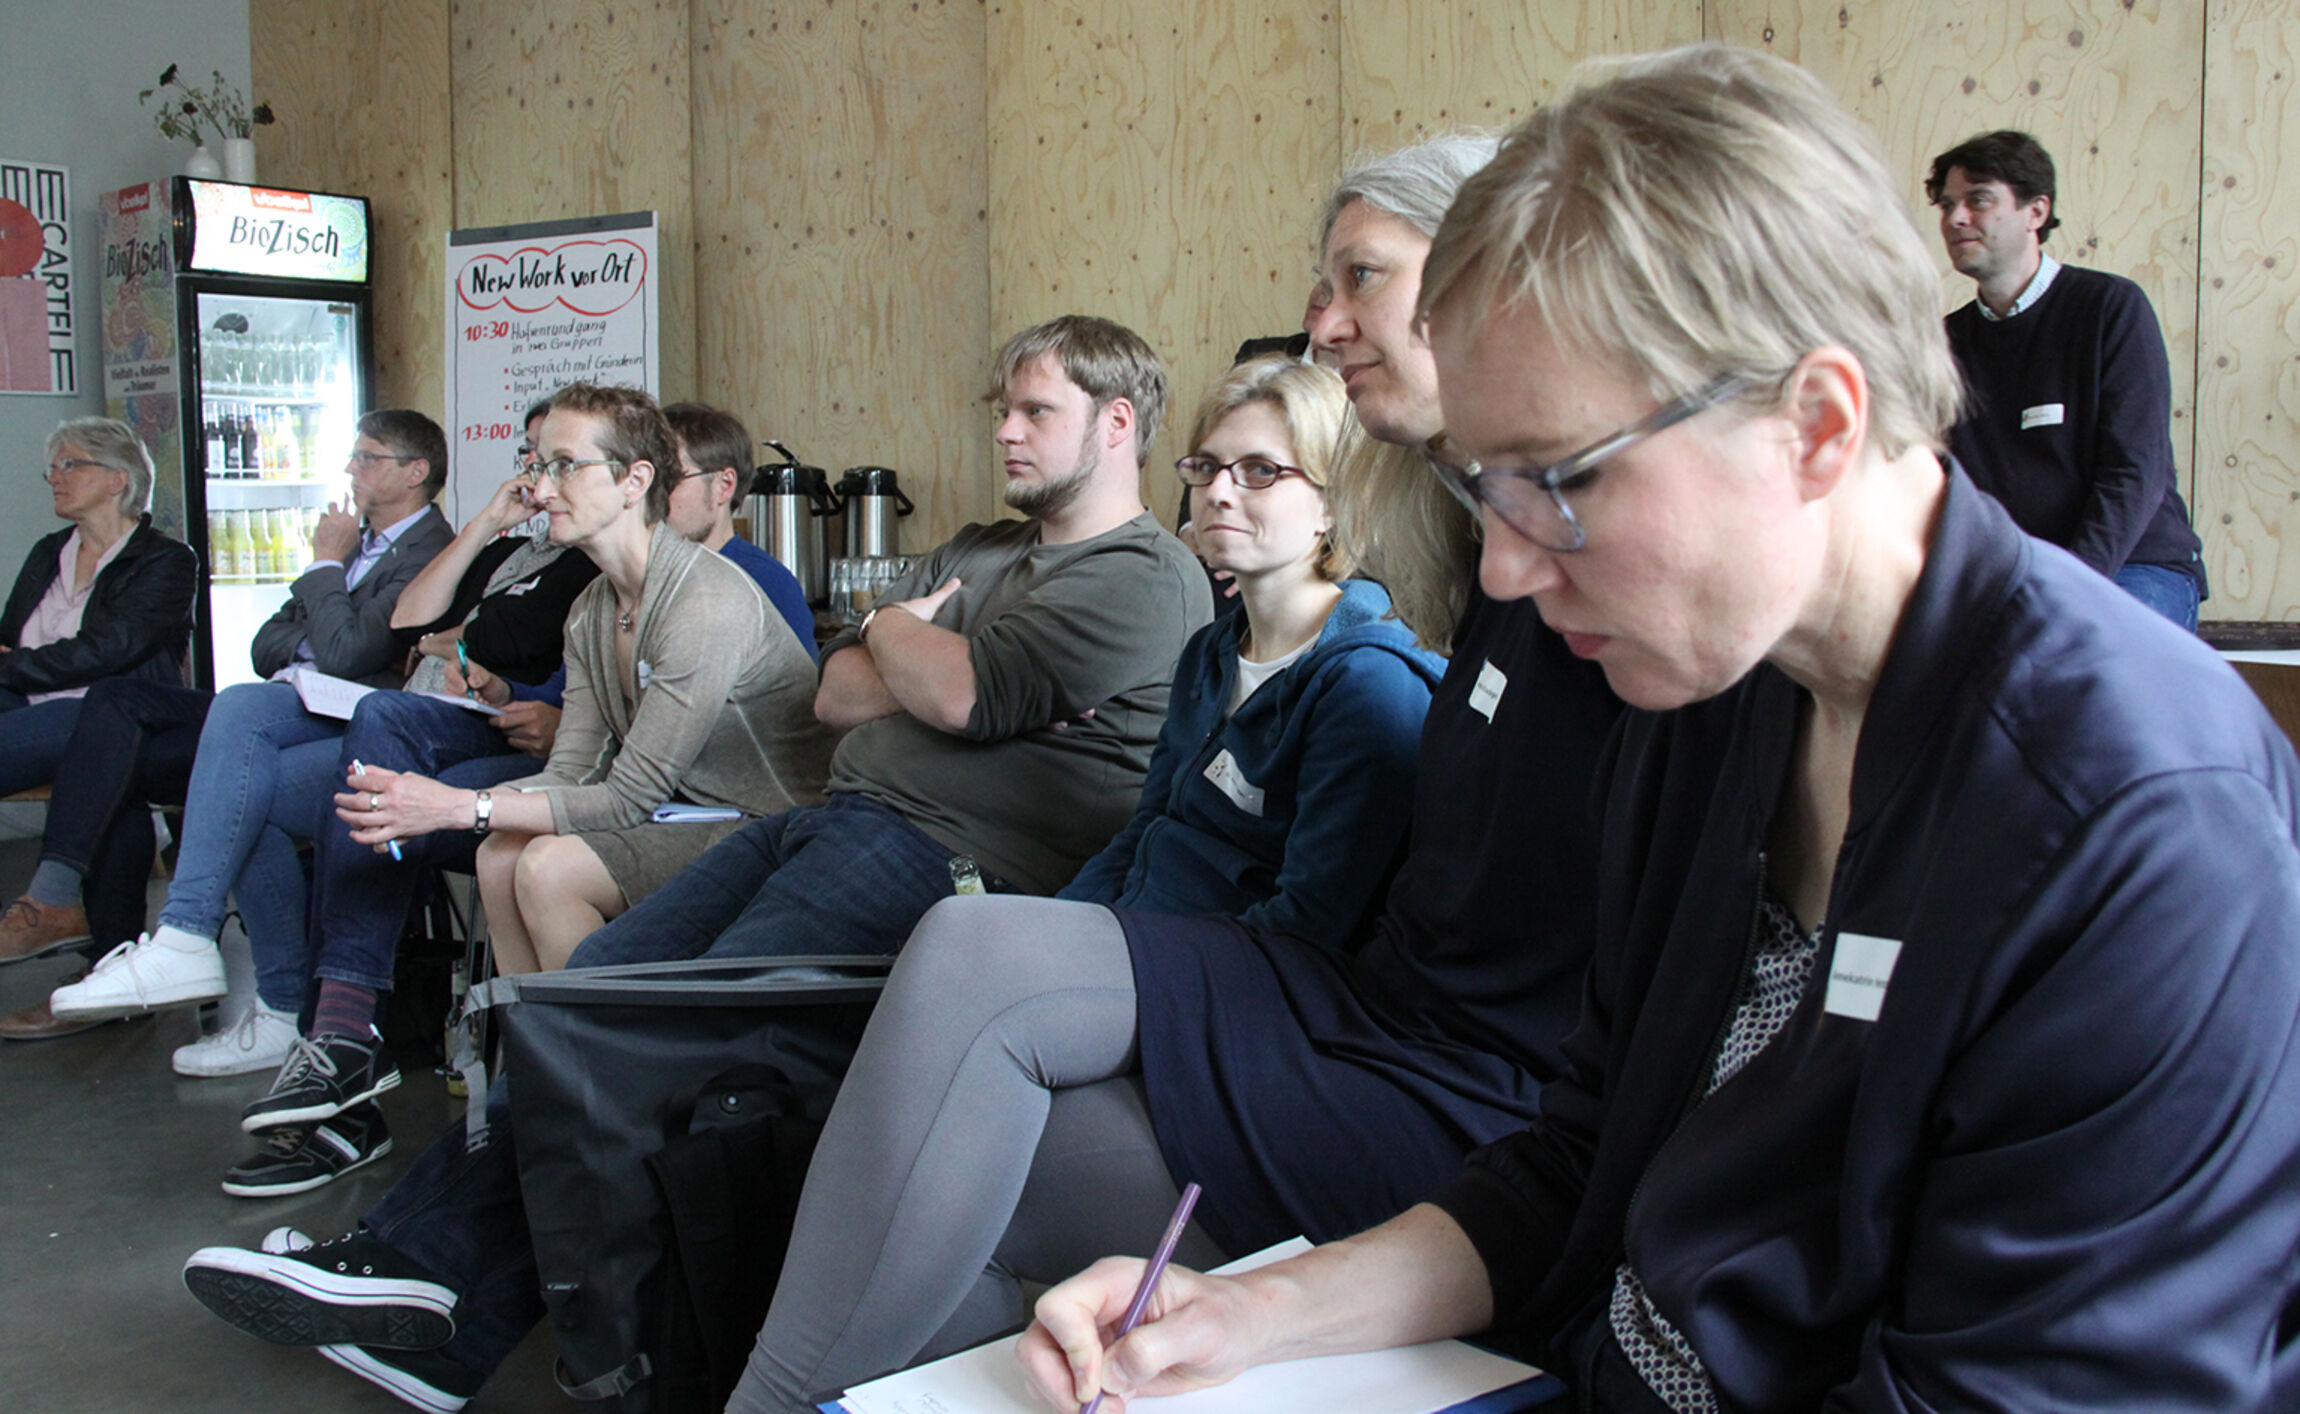 19-05-23-coworking-zuhoerer_5031